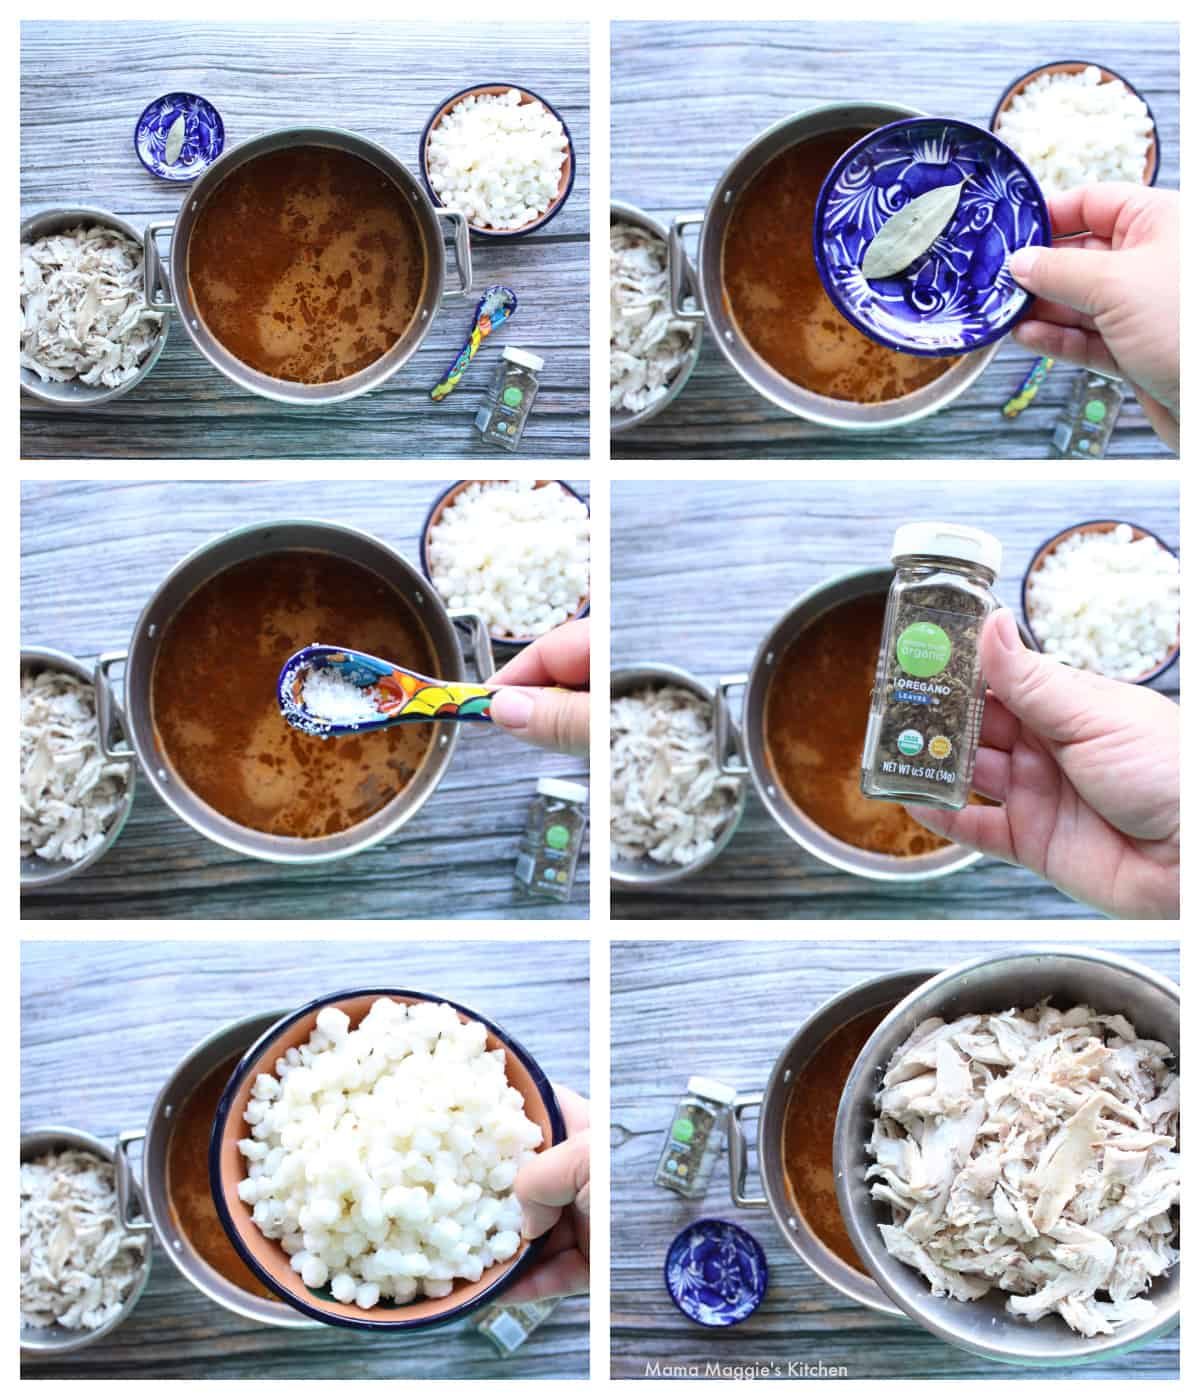 A collage showing how to assemble the pozole in the pot.